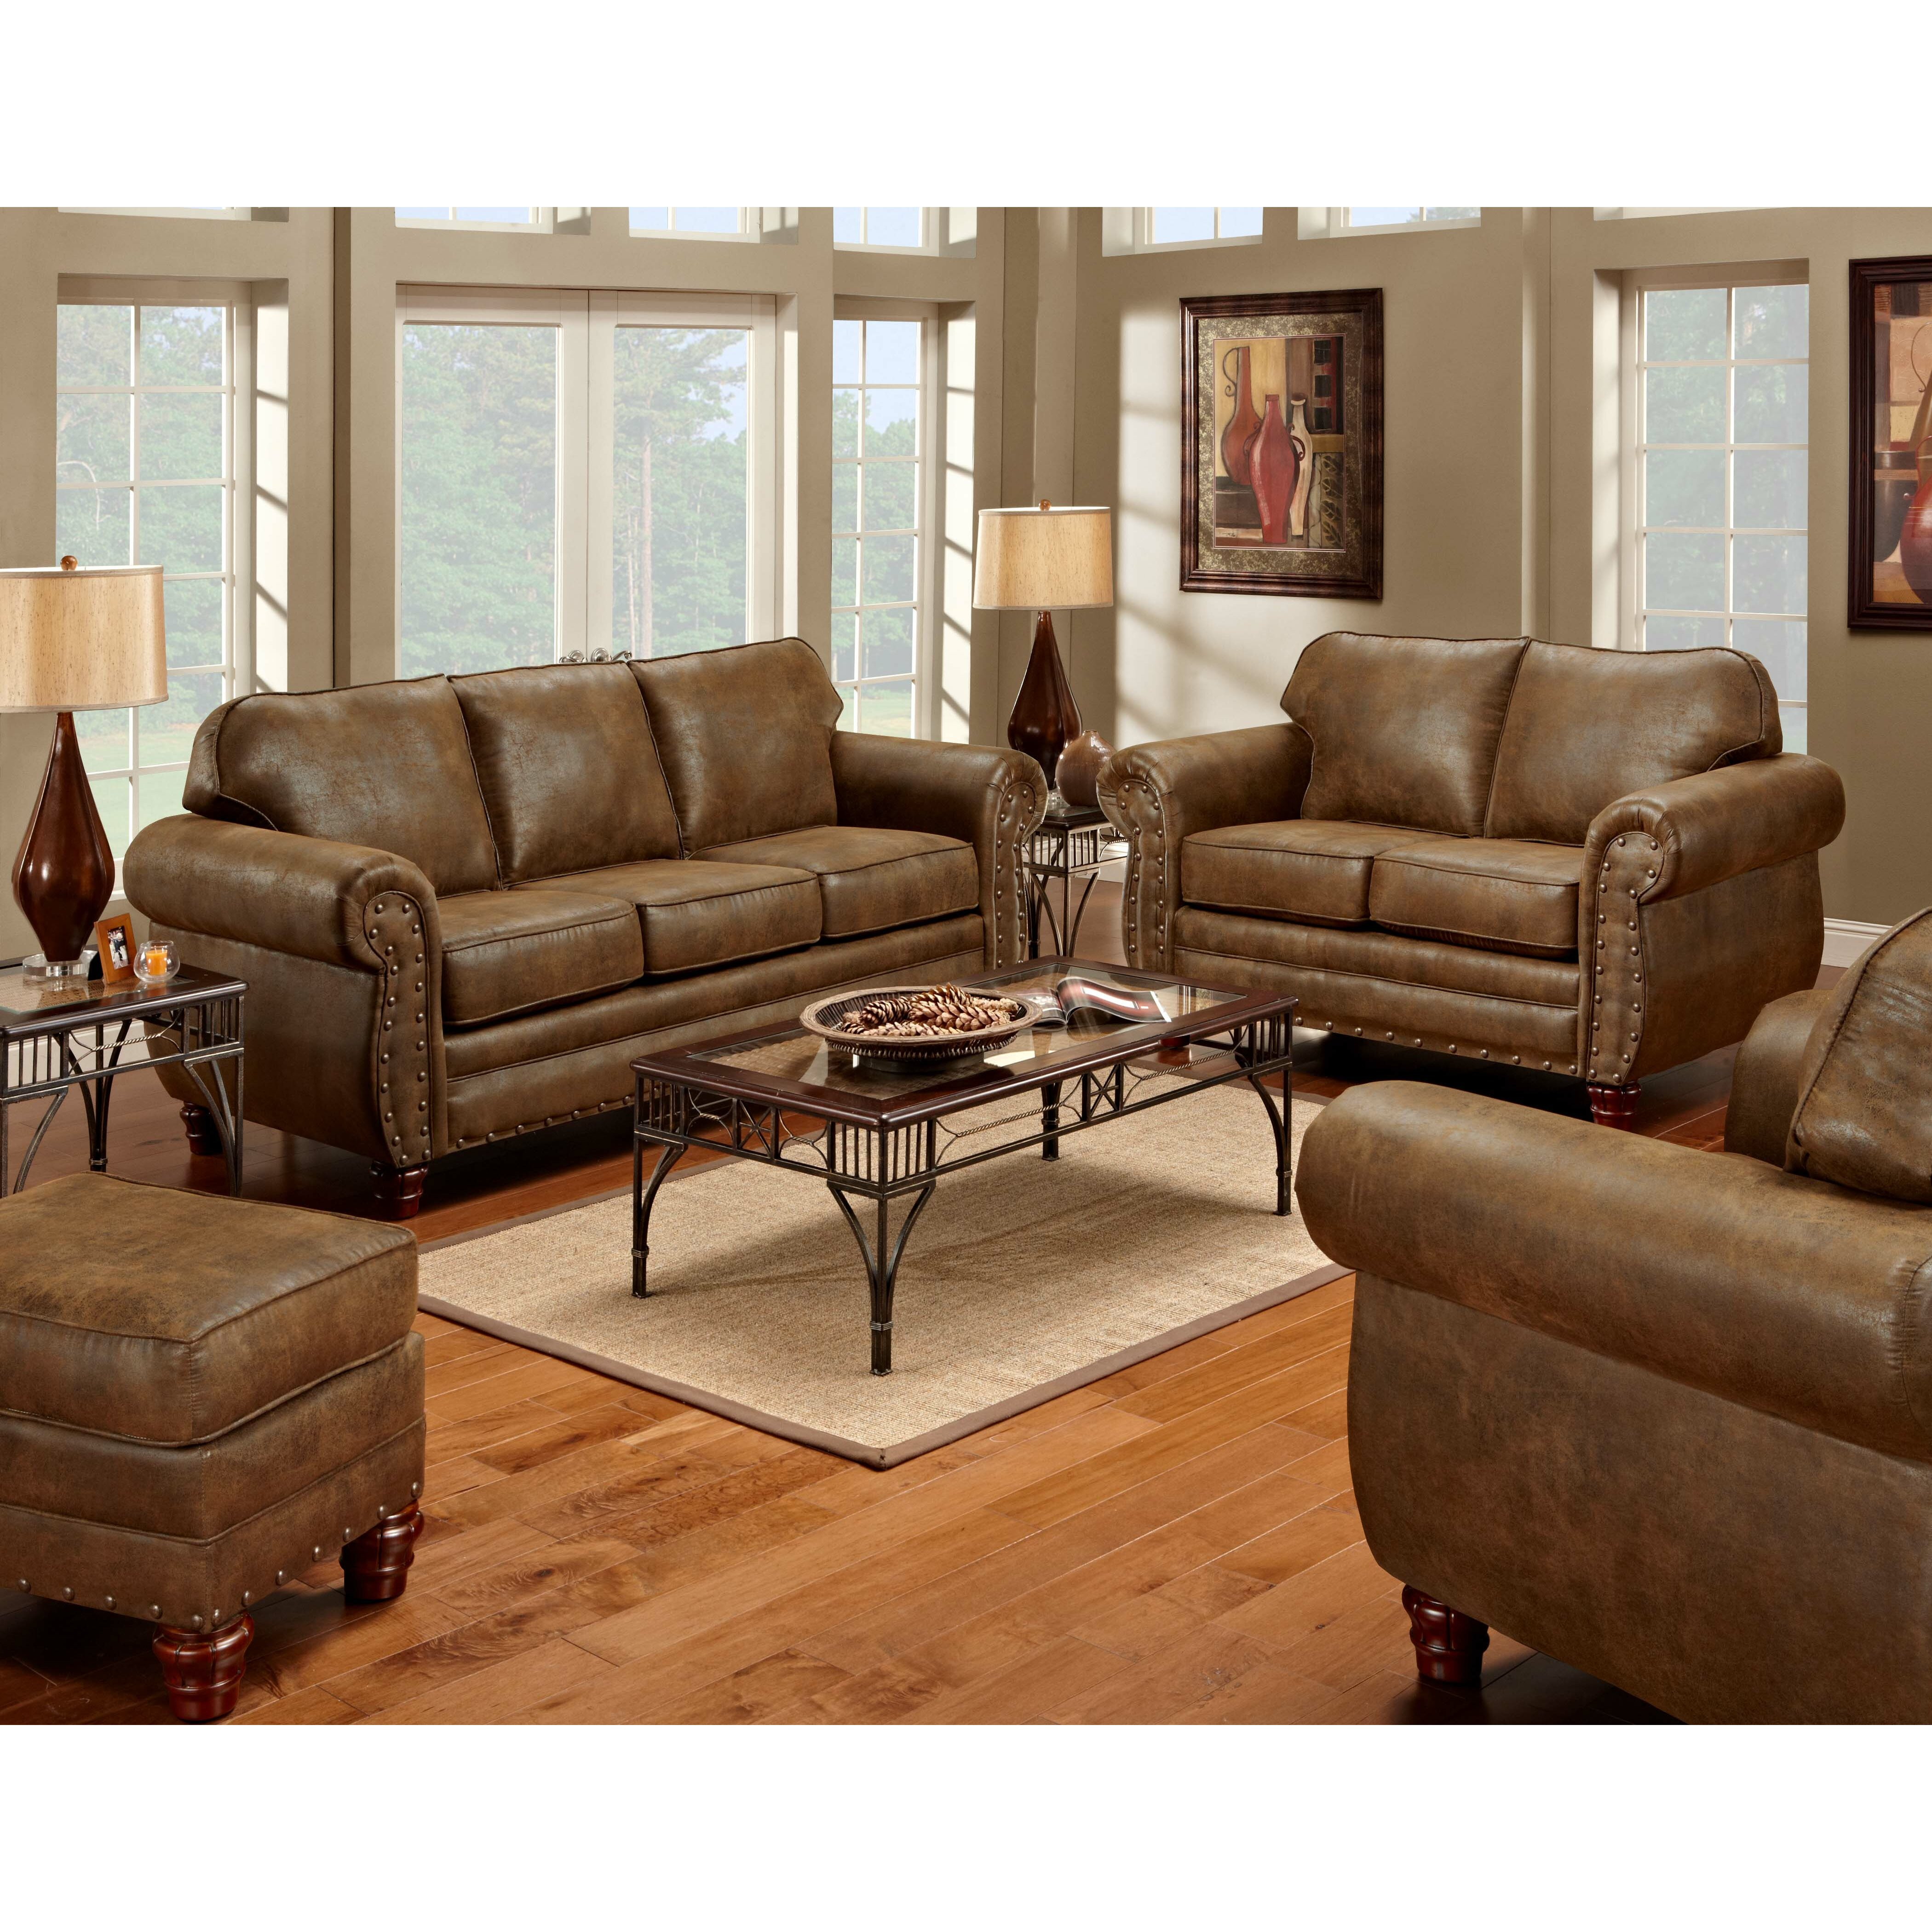 American furniture classics sedona 4 piece living room set for 4 piece living room set